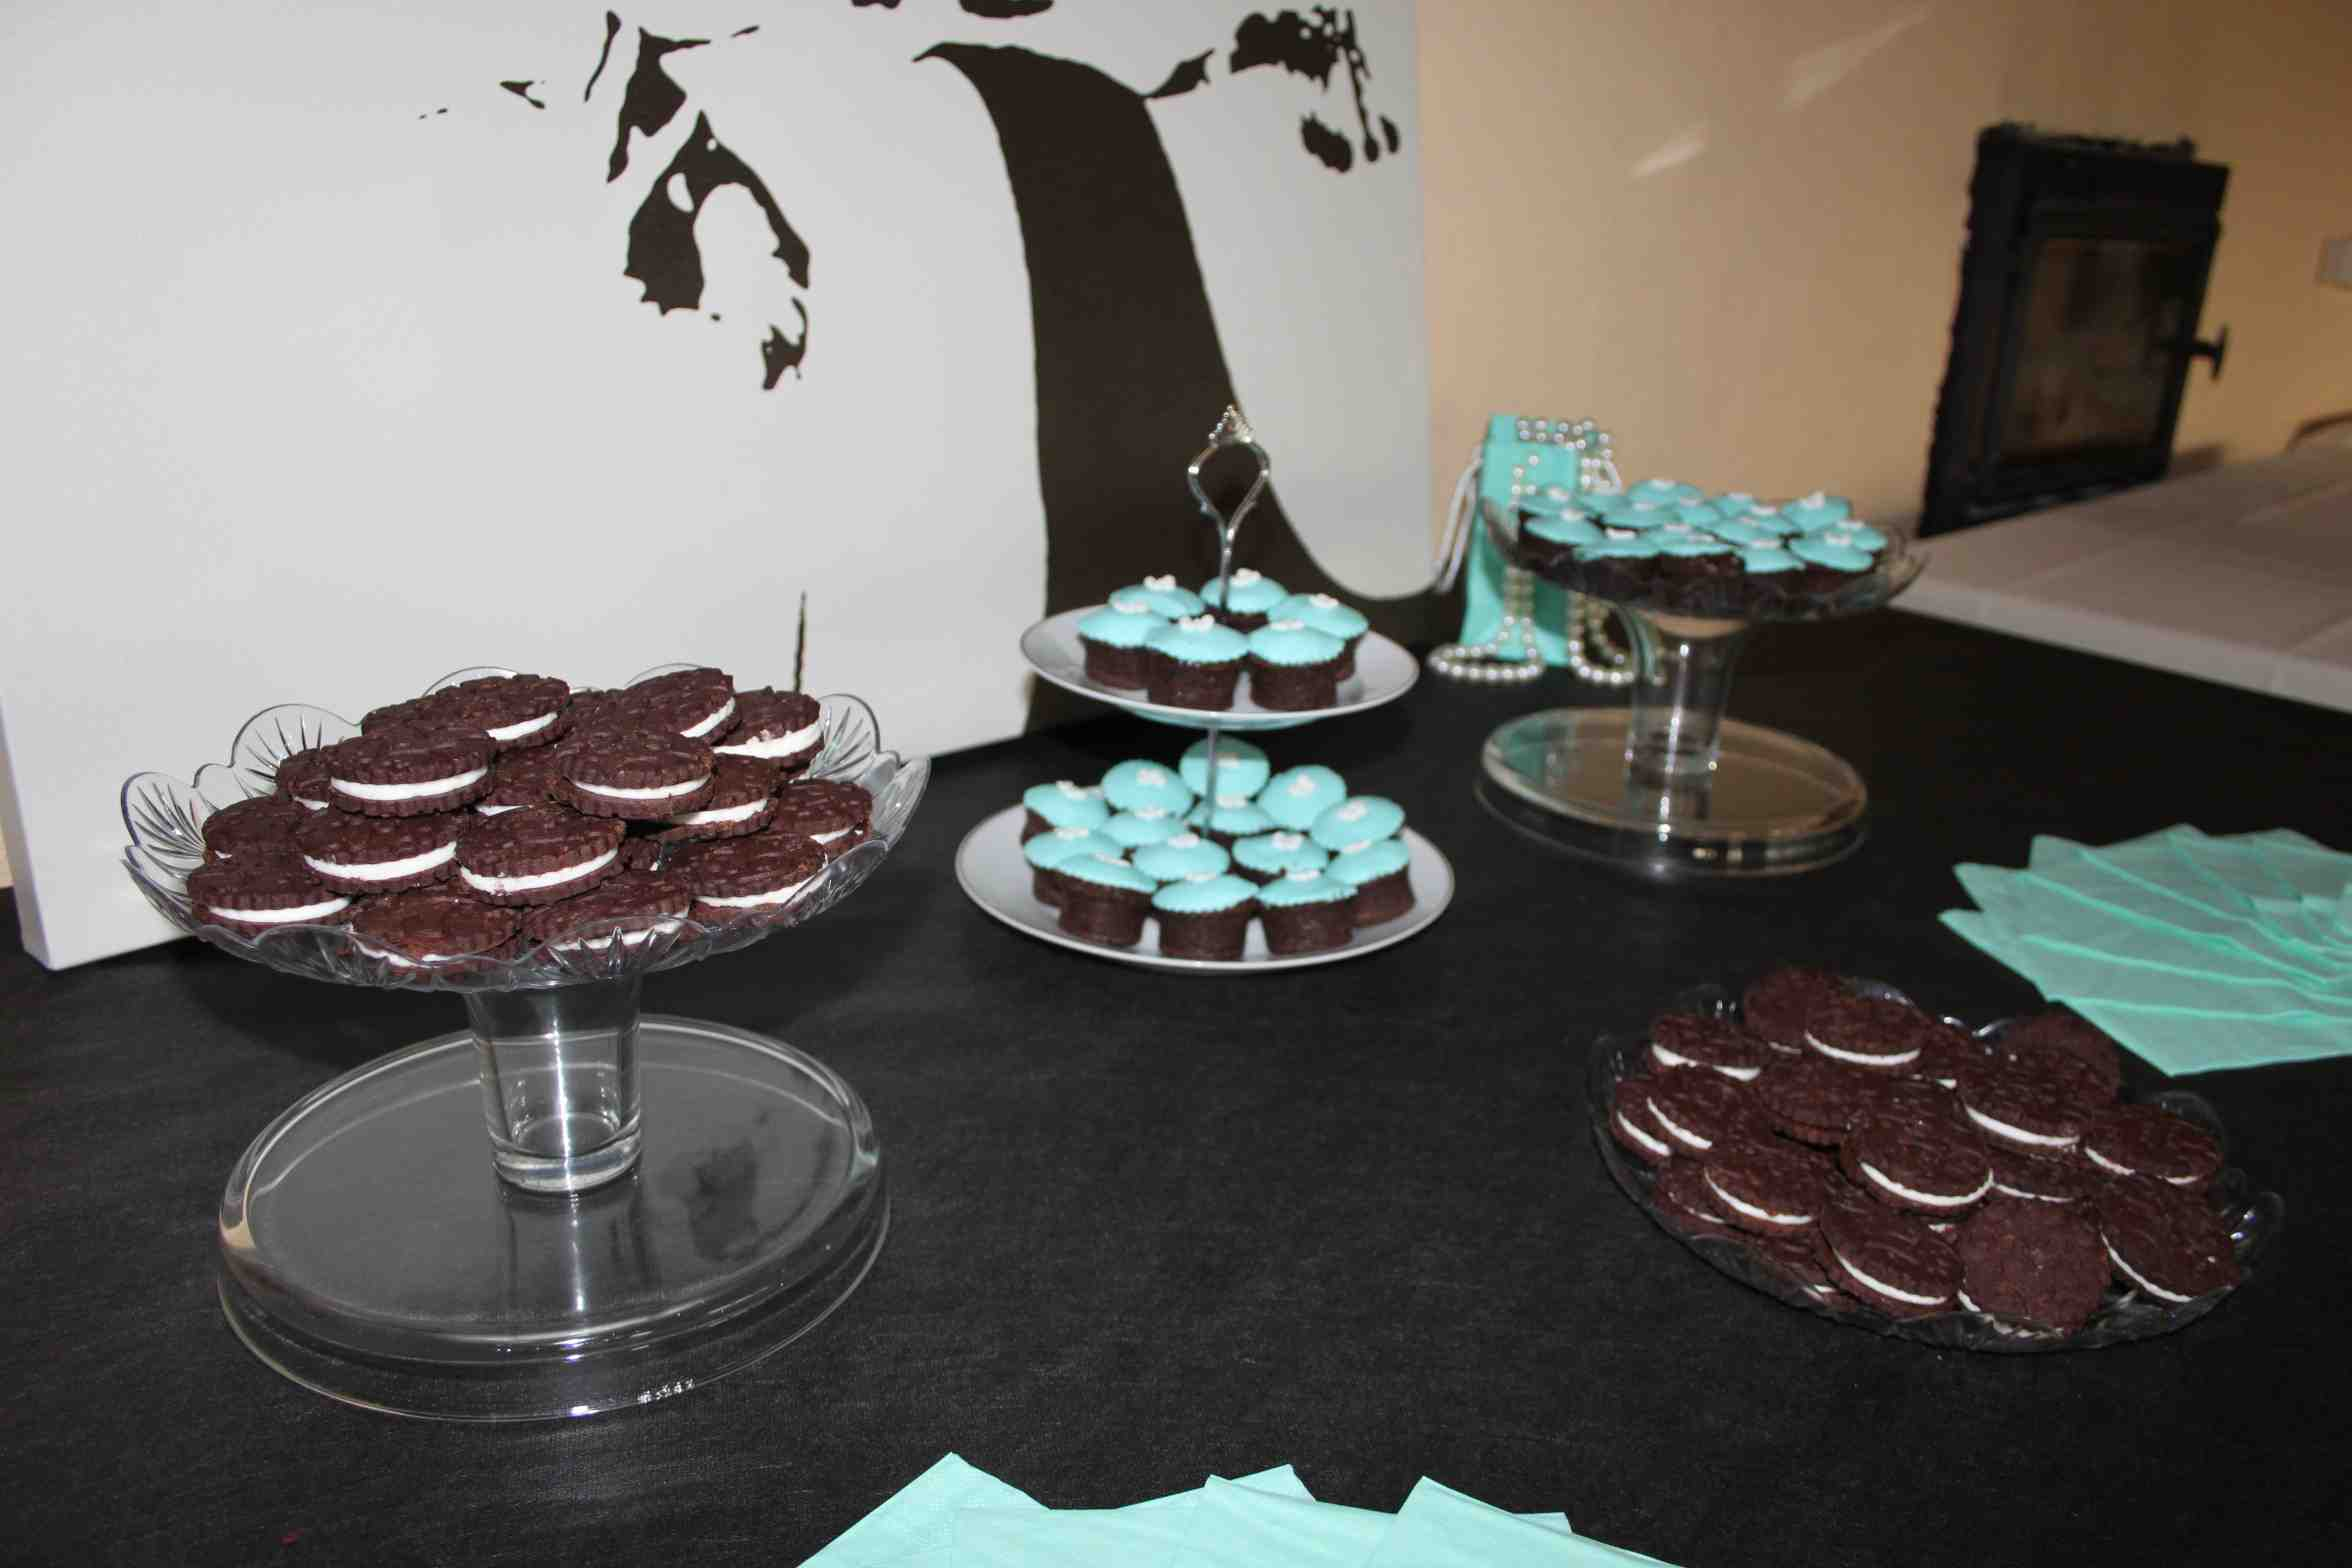 Favorito Breakfast at Tiffany's 18th Birthday Party | Le Jour du Oui GT46